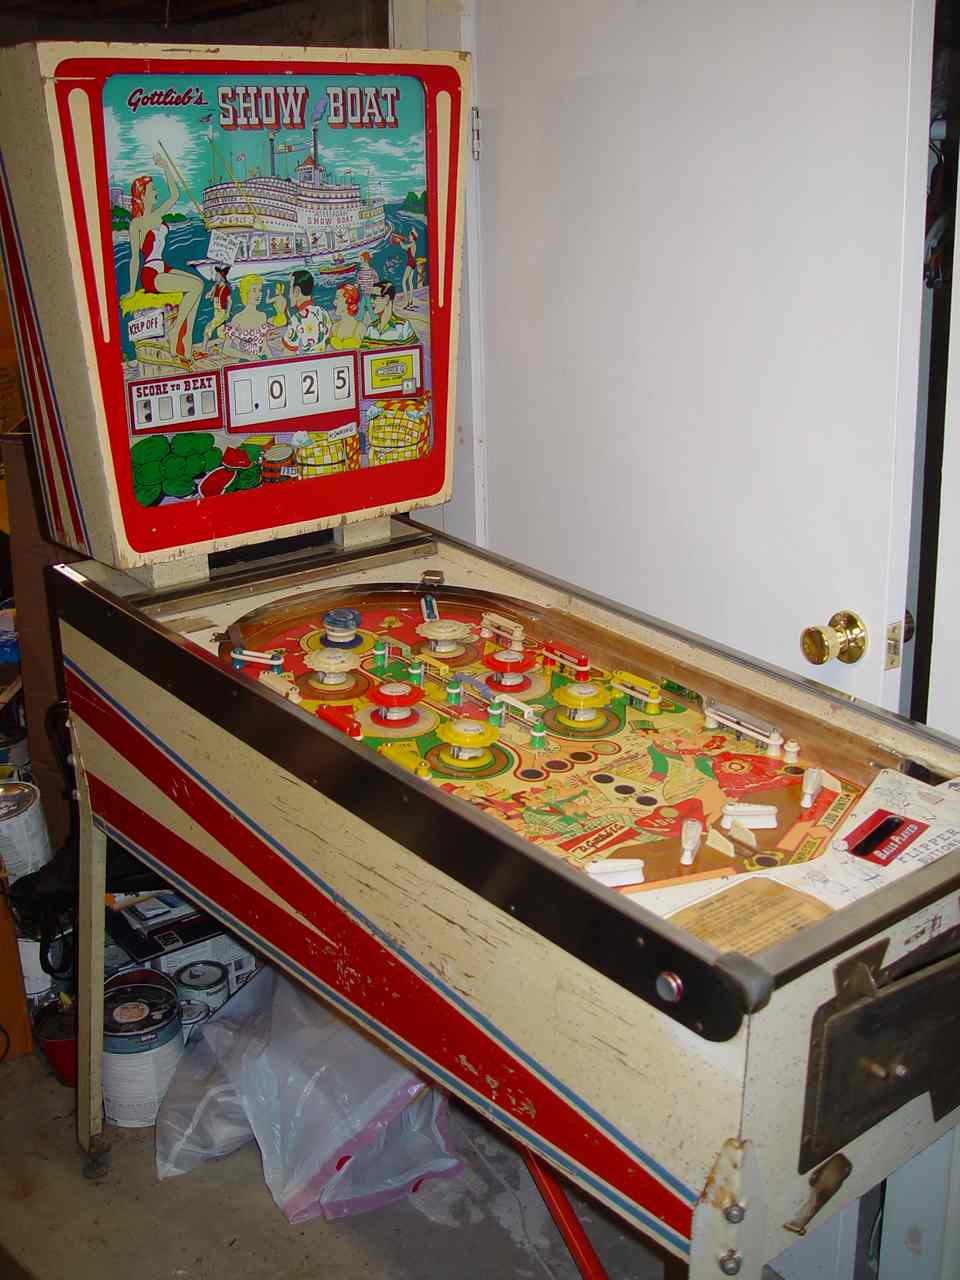 1961 Gottlieb Show Boat Pinball Machine For Sale at R-Kade Games in Massachusetts